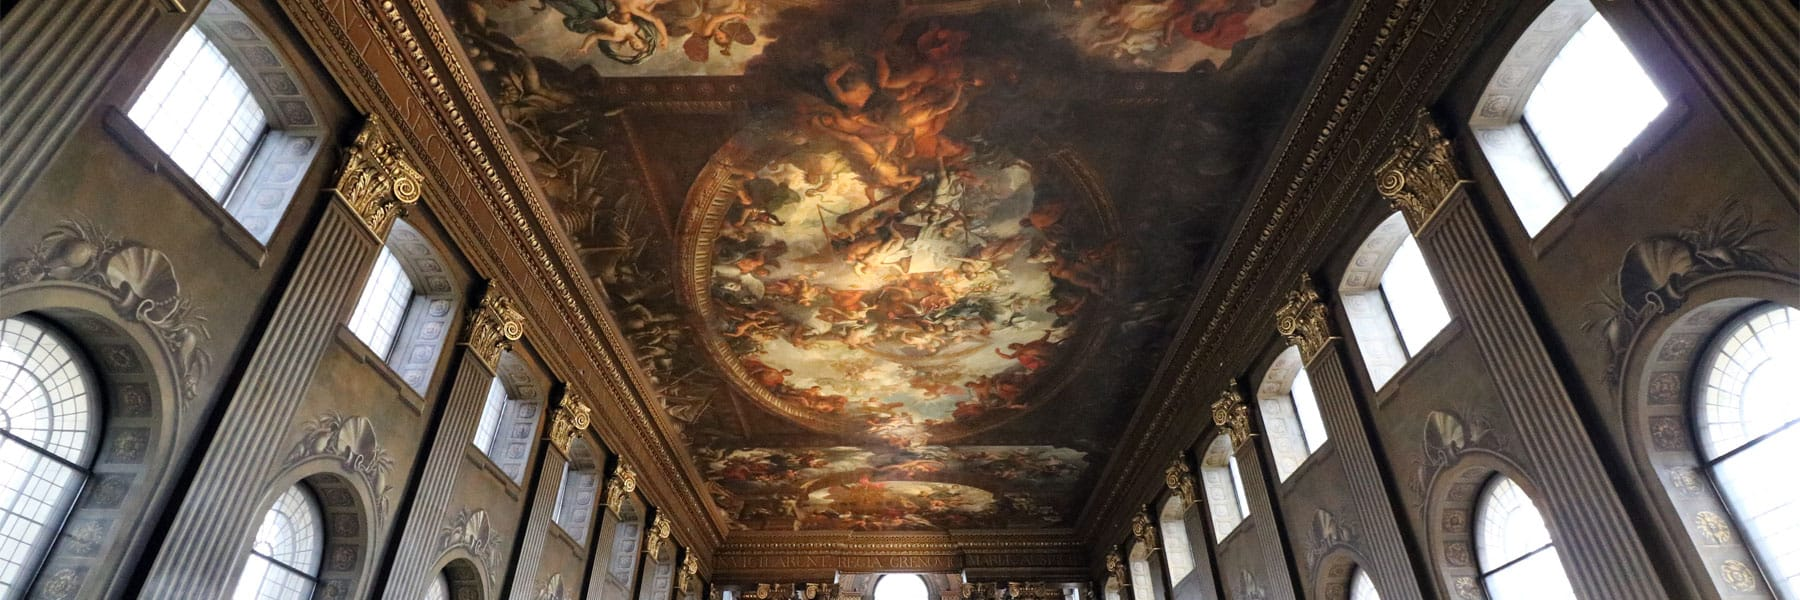 Old Royal Naval College, The Painted Hall Re-Opening